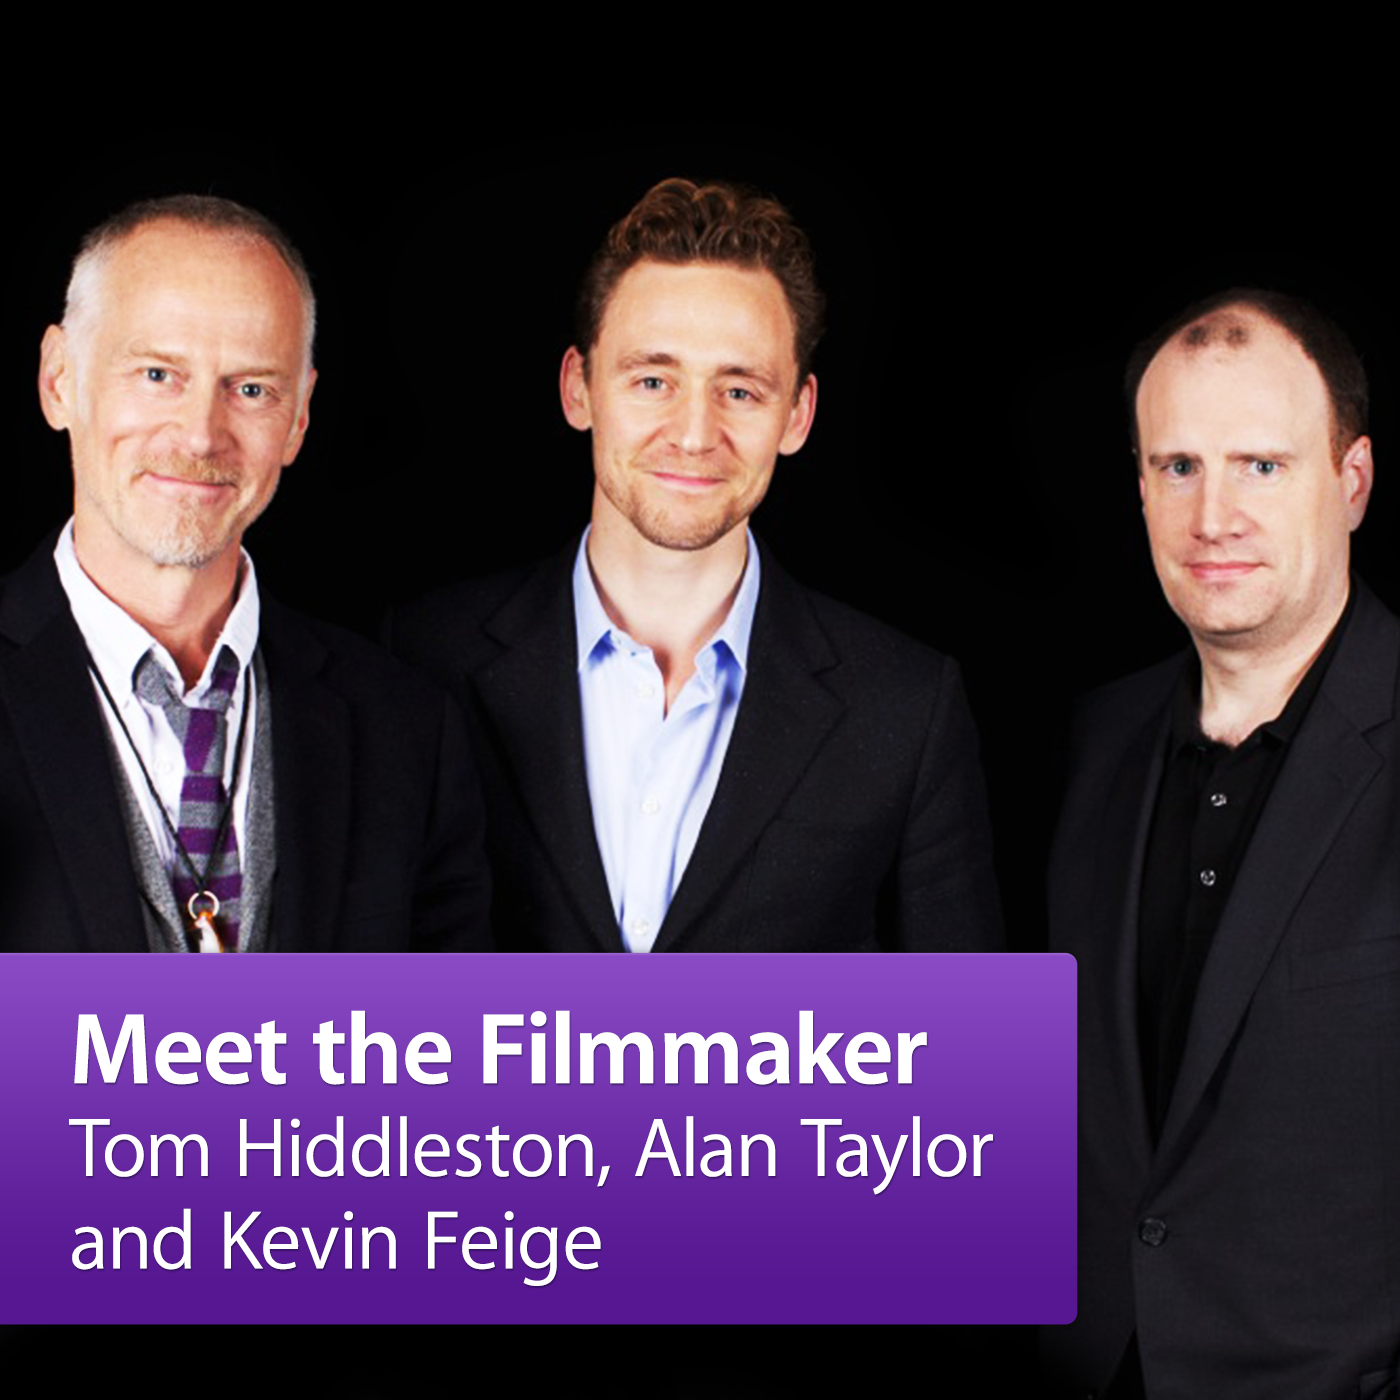 Tom Hiddleston, Alan Taylor and Kevin Feige: Meet the Filmmaker